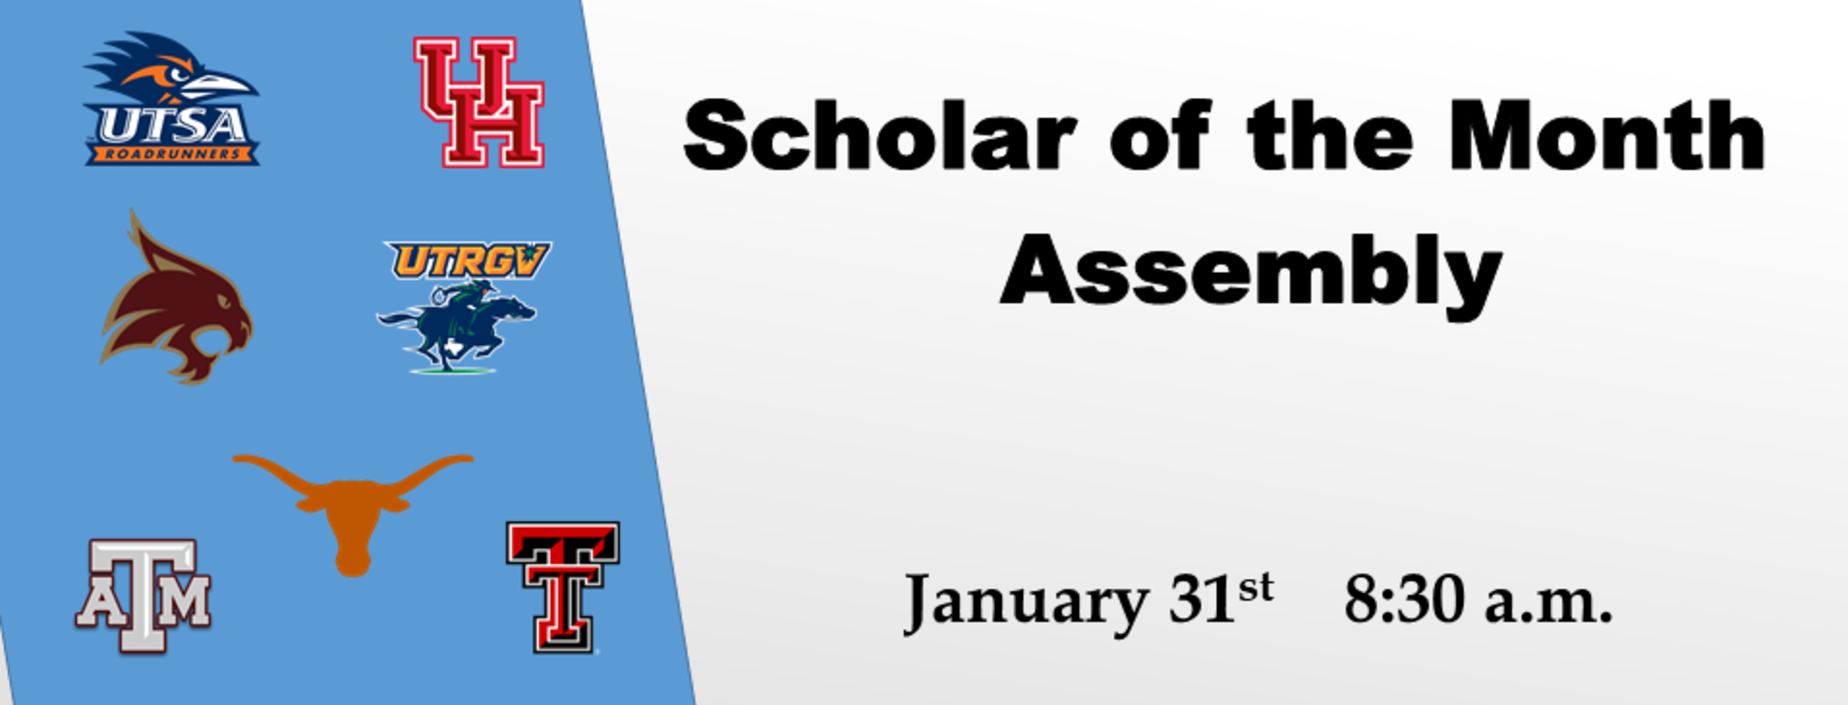 picture of scholar of the month information